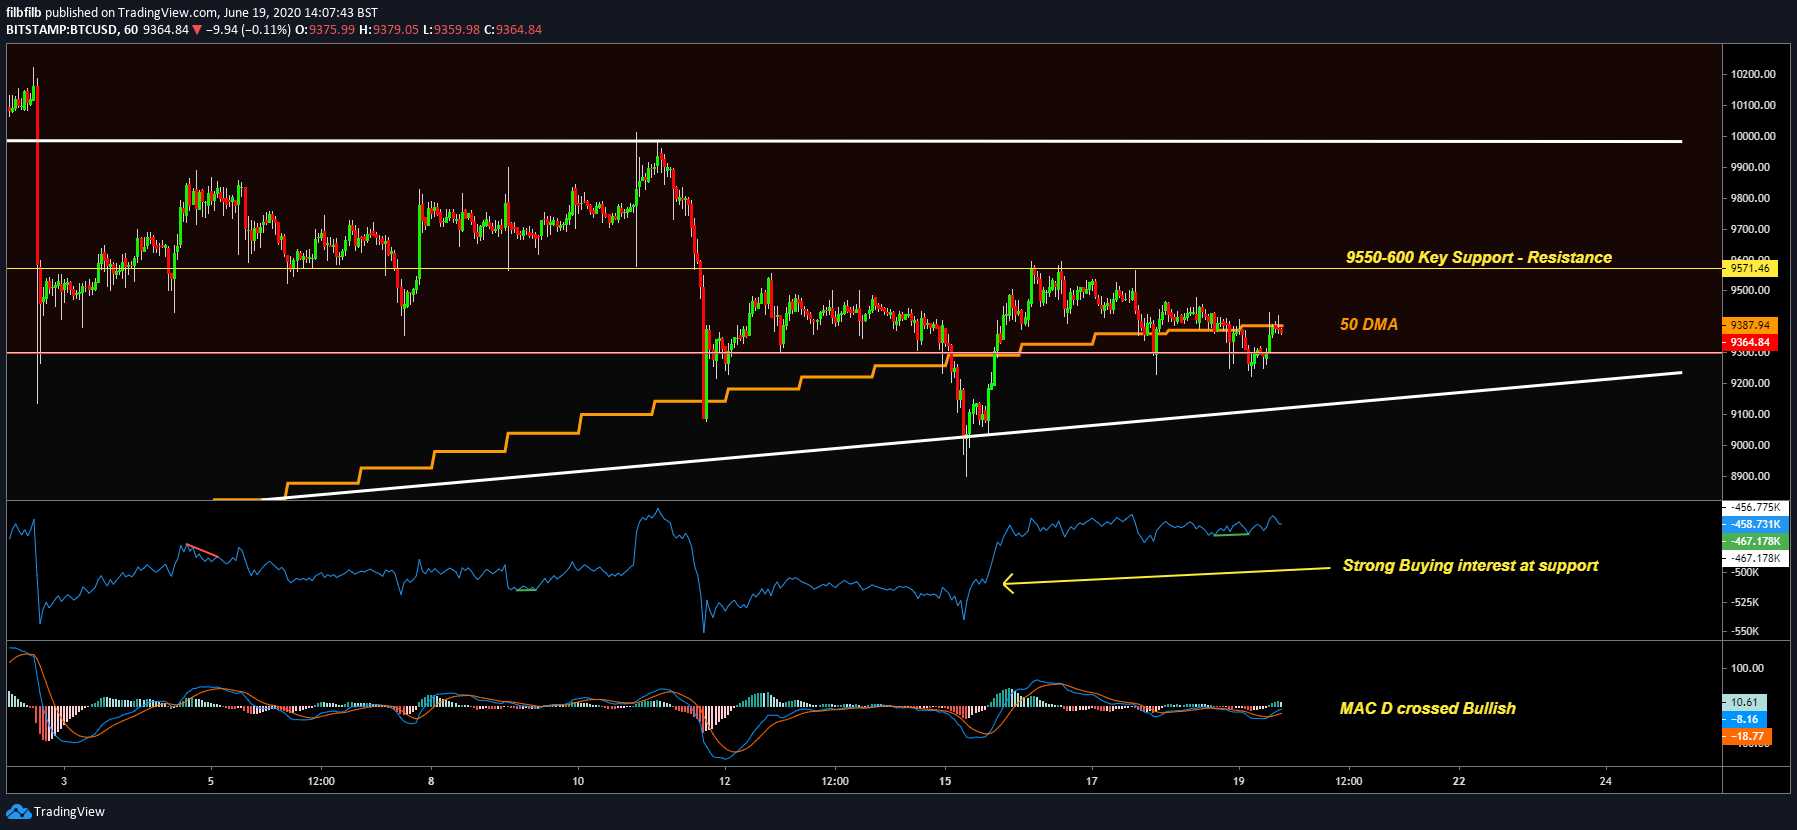 BTC/USD 1-hour chart. Source: Tradingview